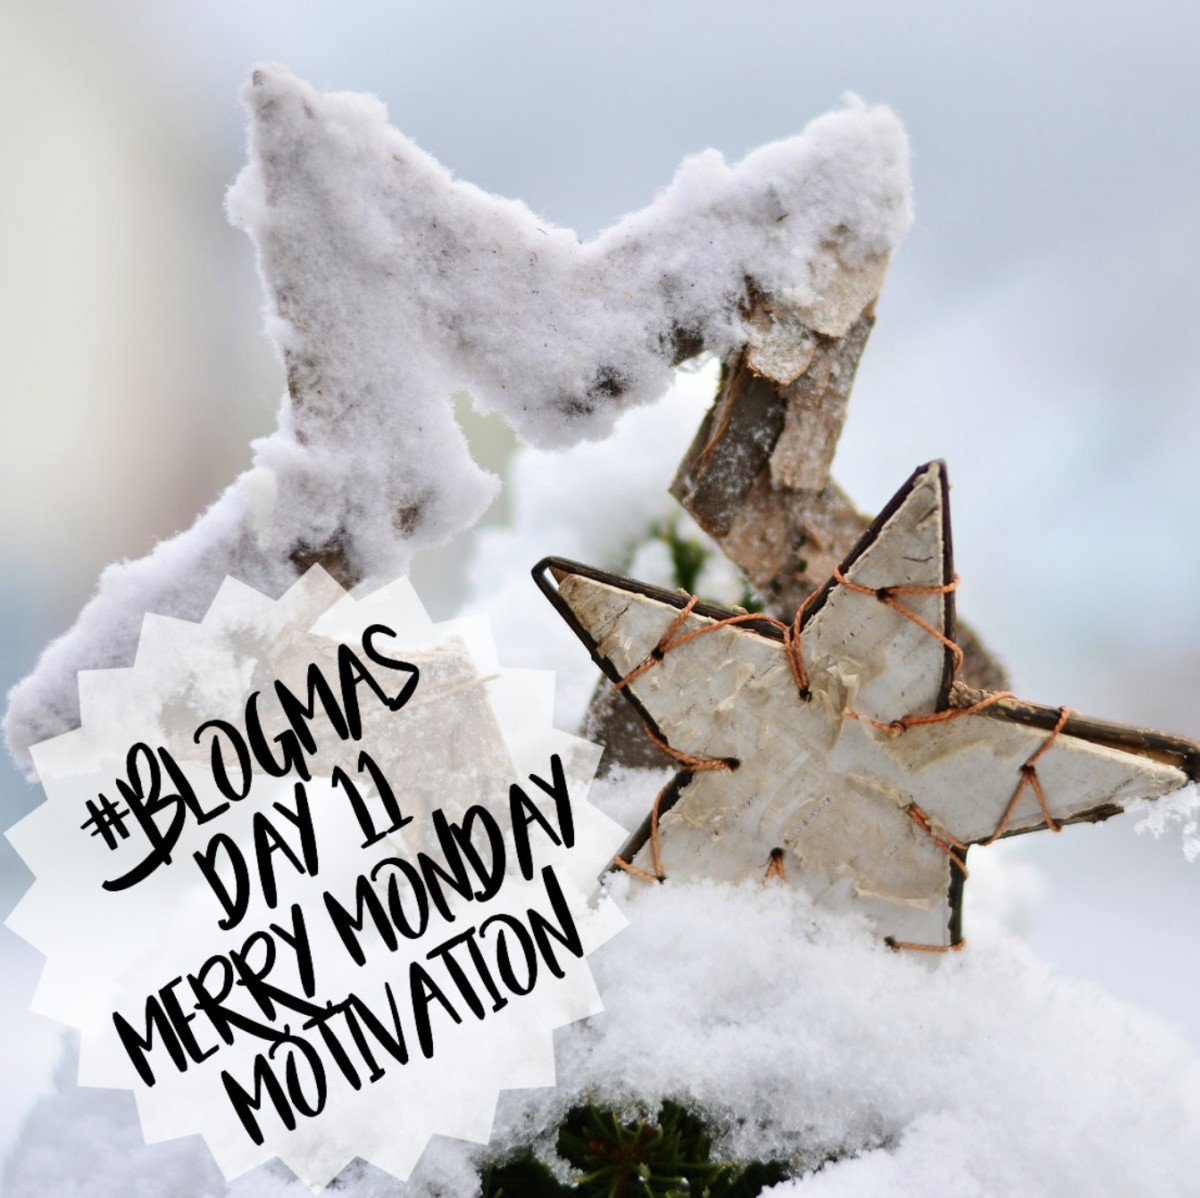 Monday, Monslay, Monday Motivation, Merry Monday Motivation, Motivation, Motivational, Determination, Determined, Slay, Slay the day, Snow, BLOGMAS Day 11 - Merry Monday Motivation, BlogMas, Blog A Book Etc, Fay